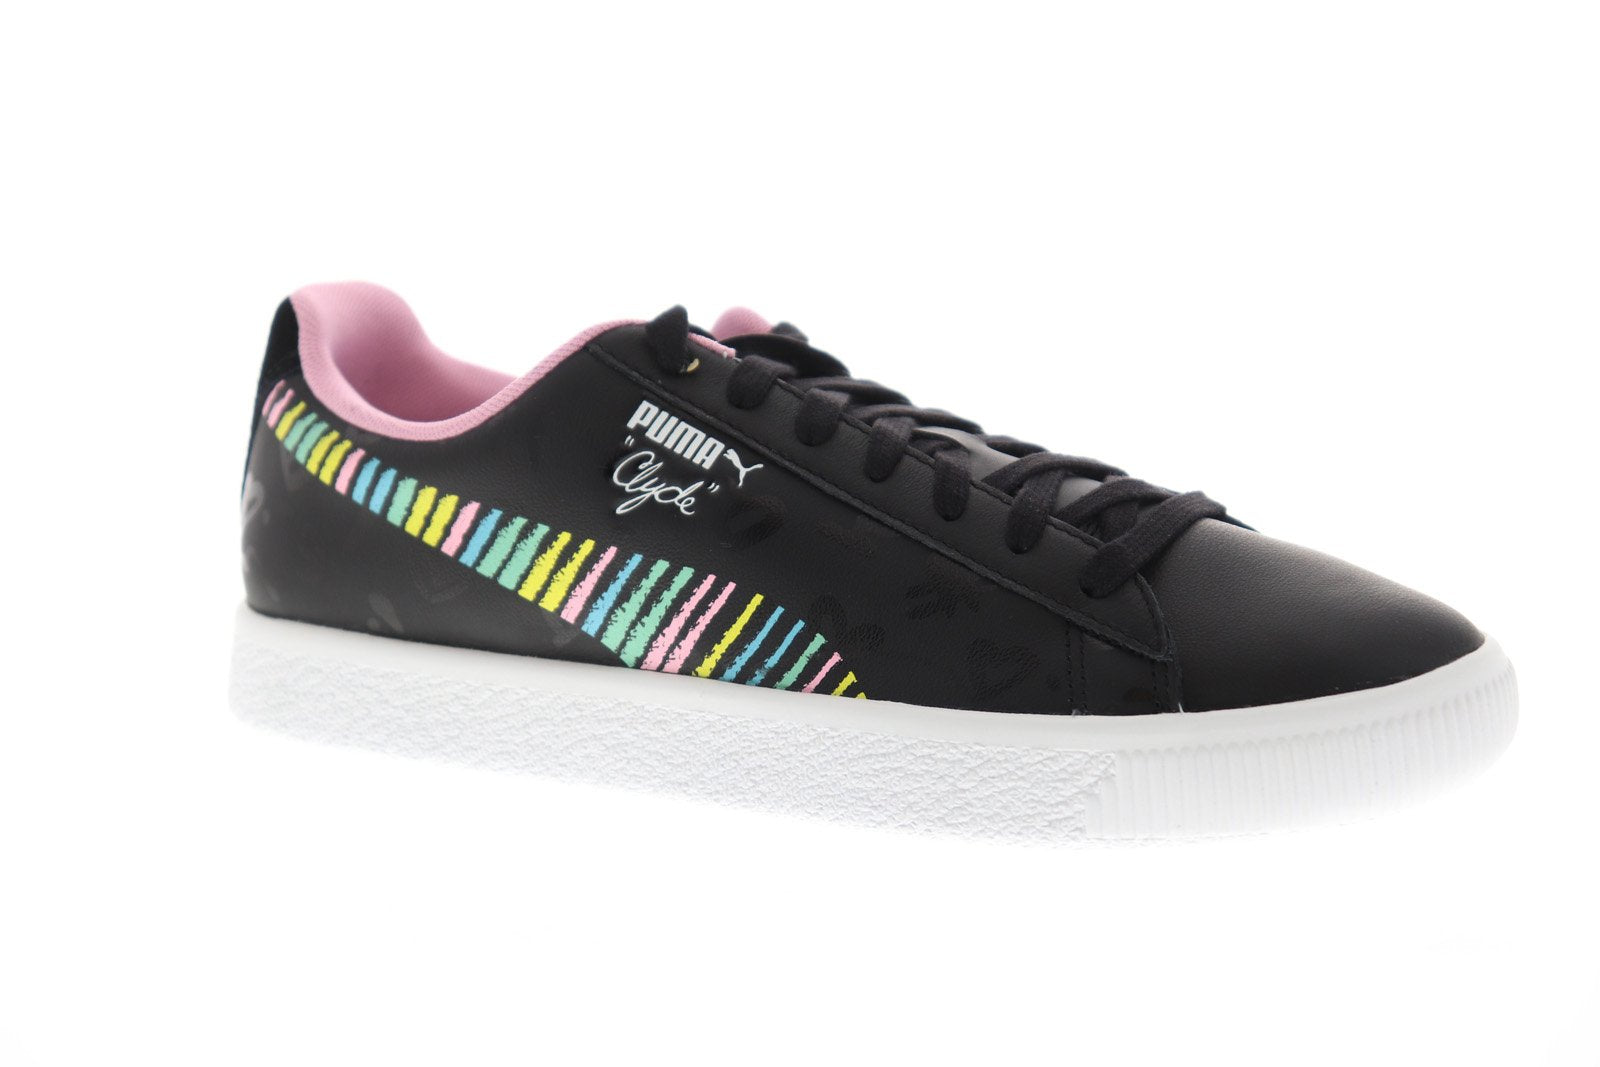 low priced ead7c 7746d Puma Clyde Bradley Theodore Mens Black Leather Low Top Sneakers Shoes